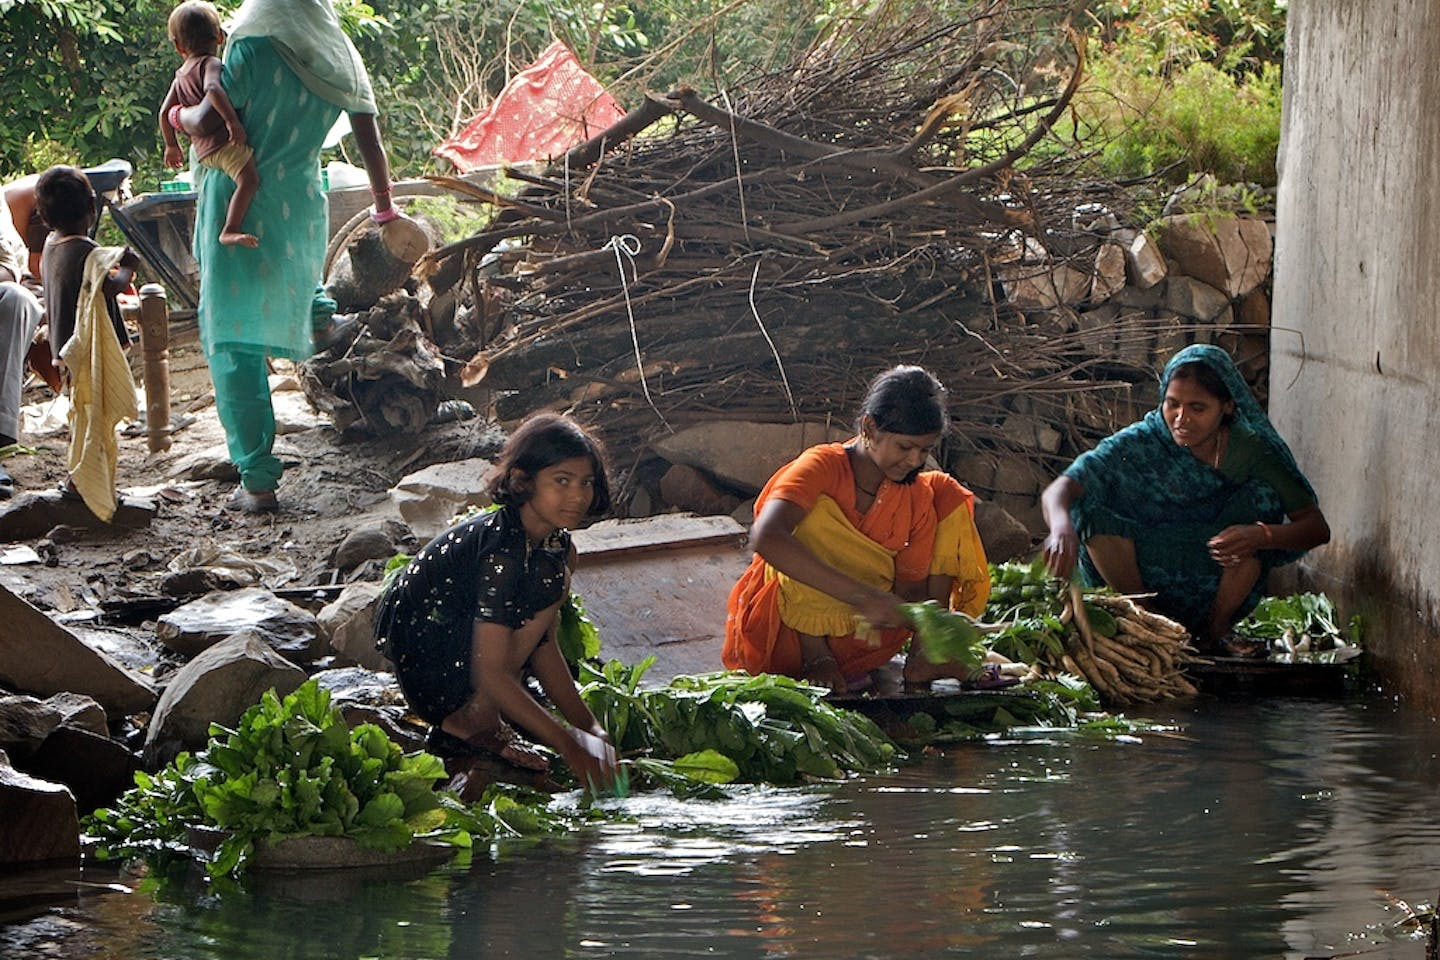 washing vegetables in the Yamuna river in India